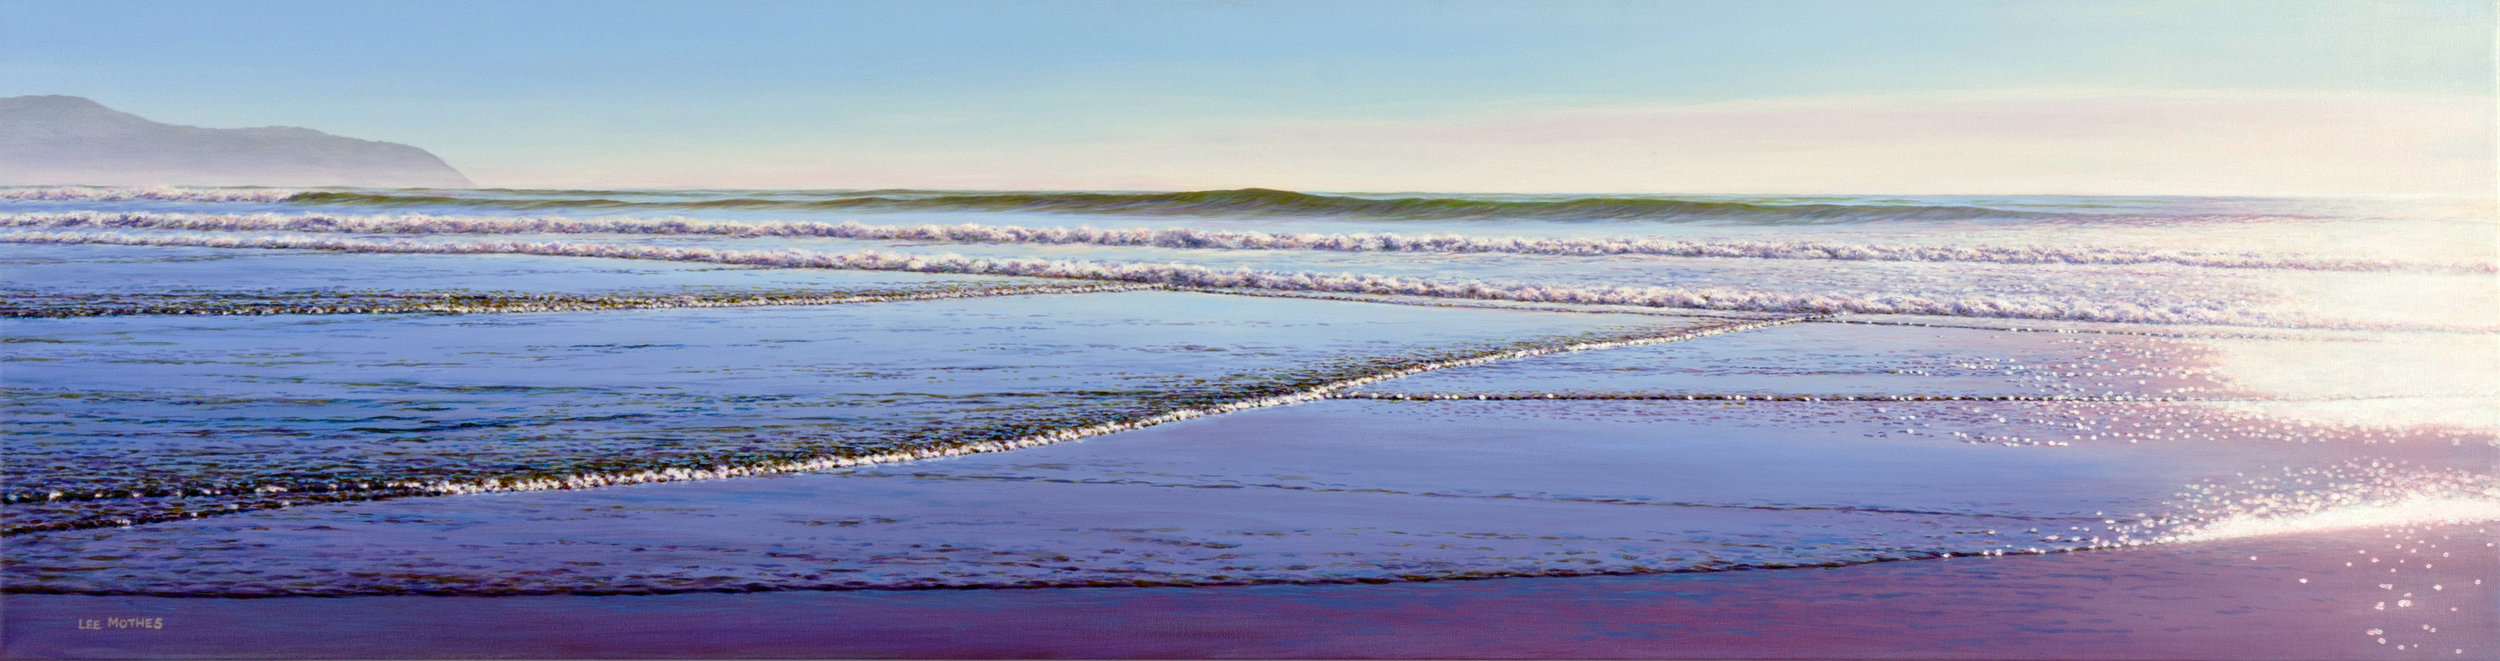 """Long Surf 9 - Afternoon Low Tide, 16"""" by 60"""" acrylic on canvas (available)"""